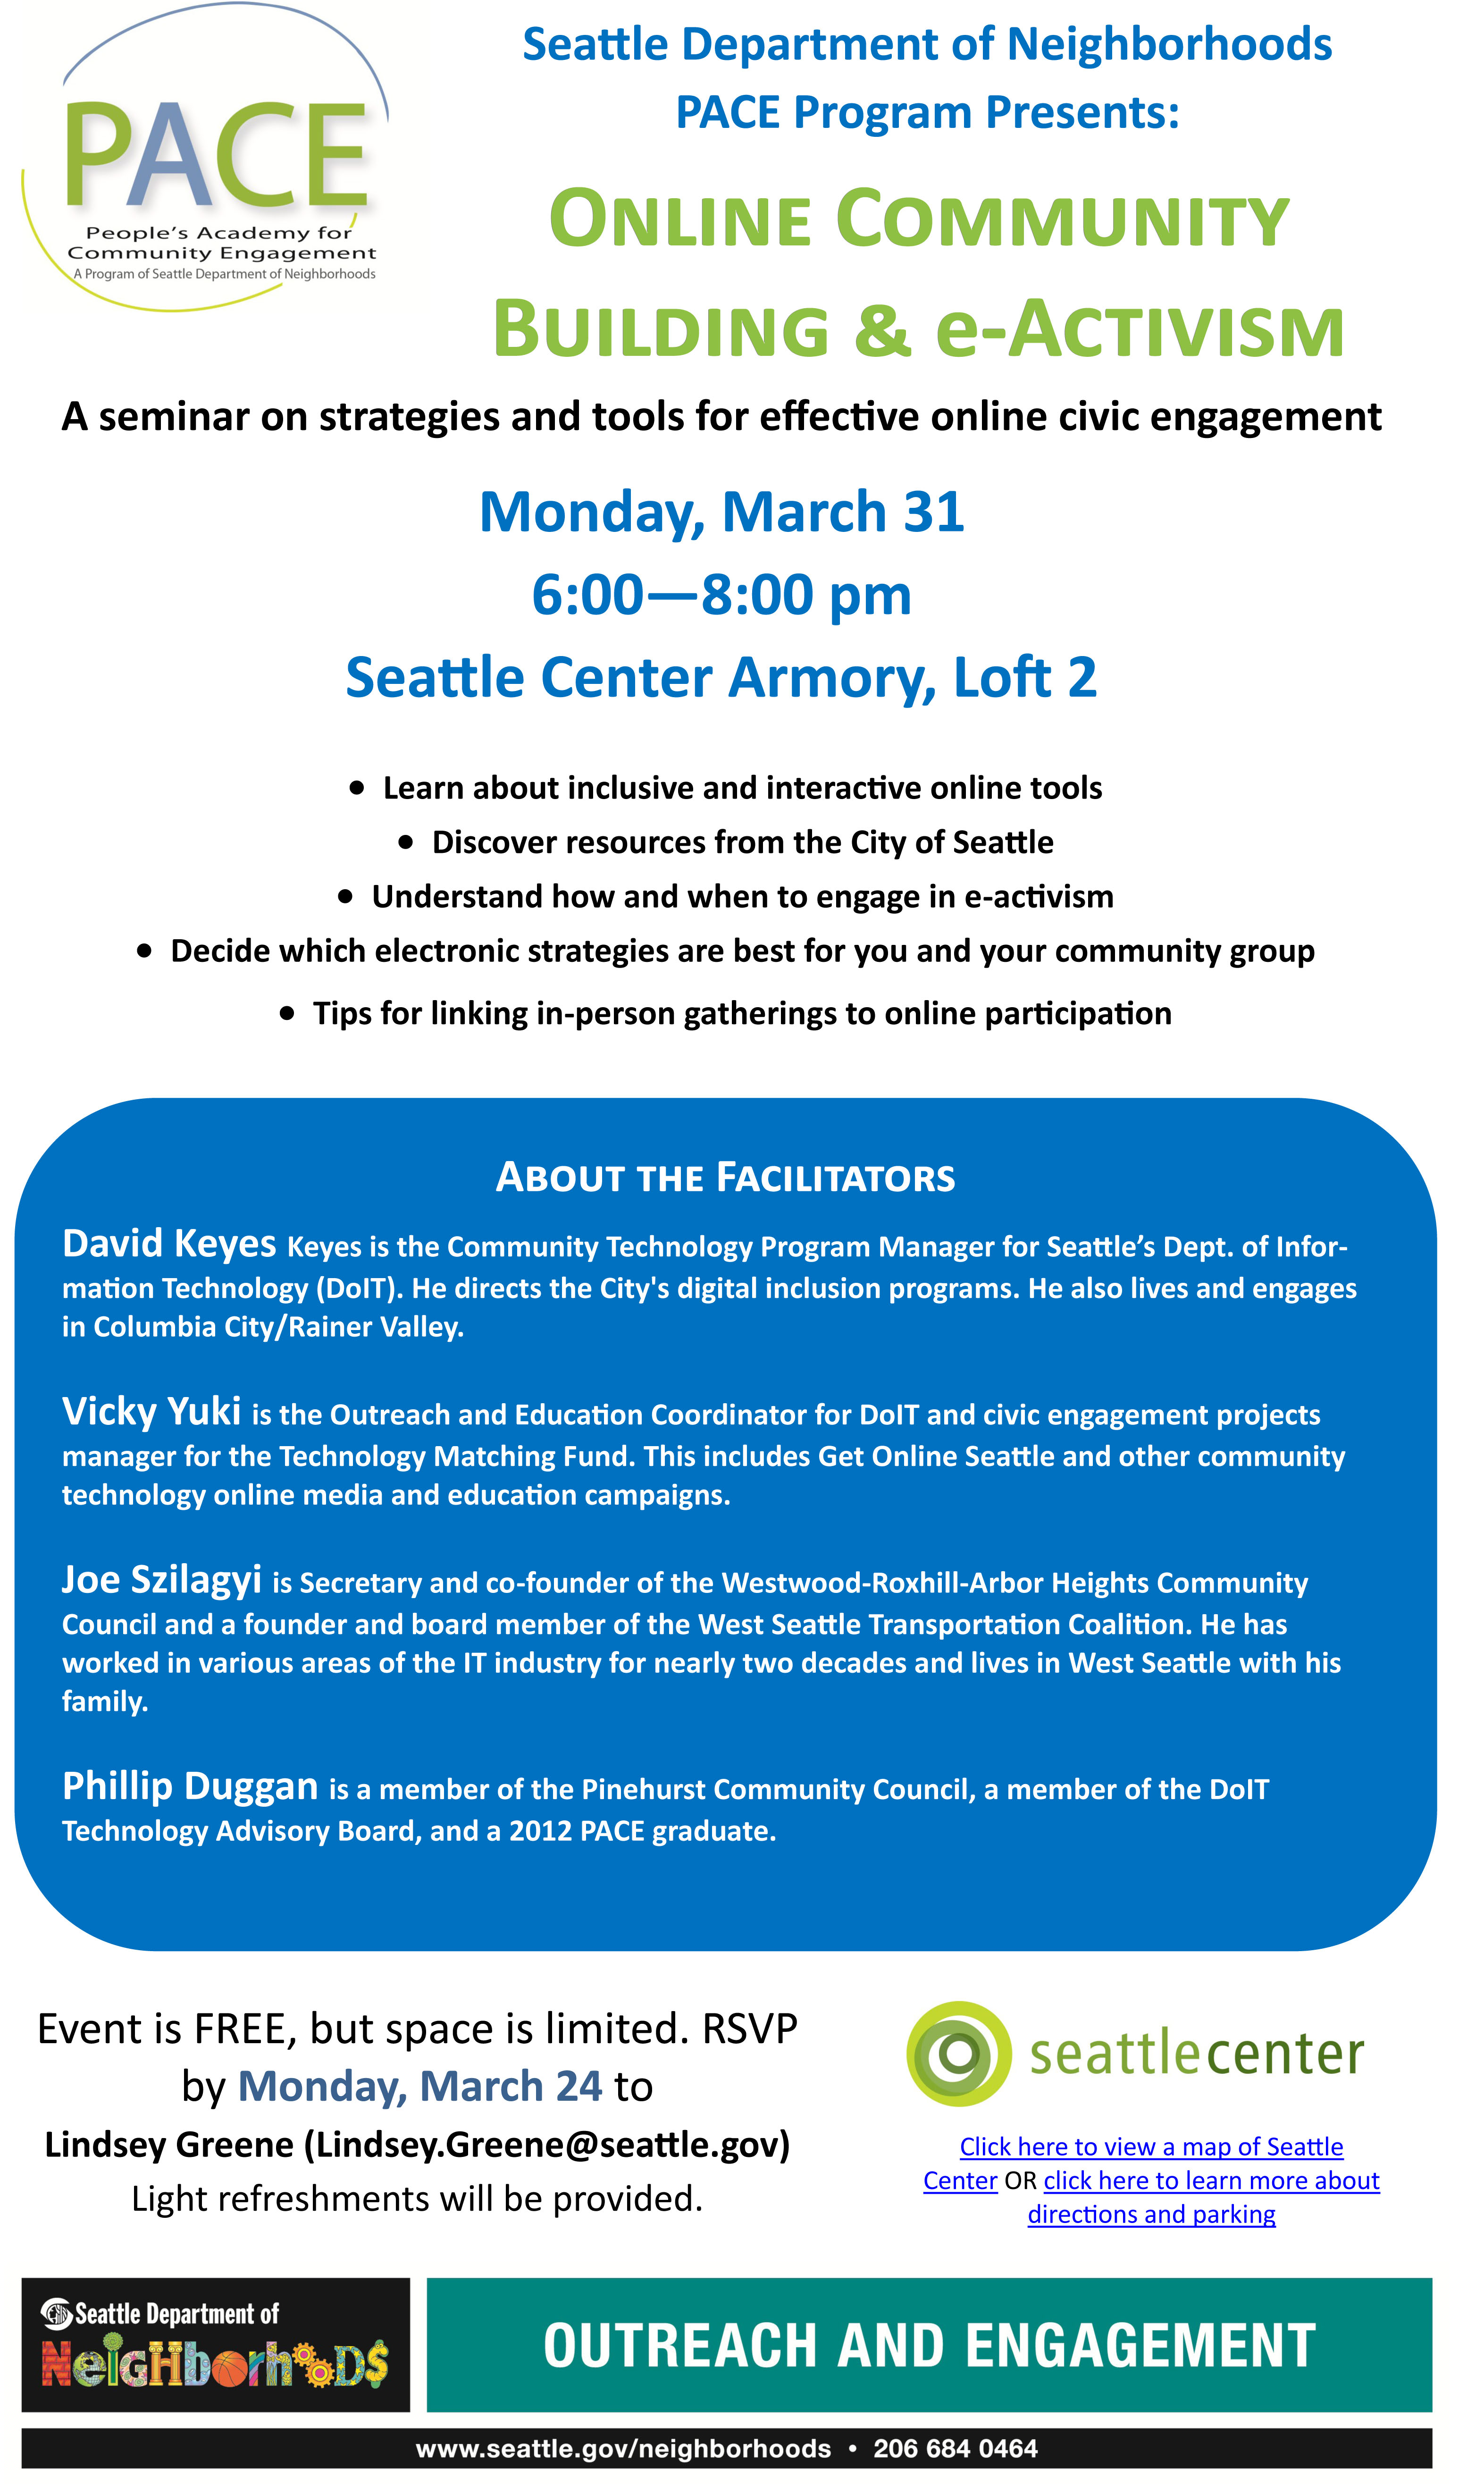 Free Seminar about Online Community Building